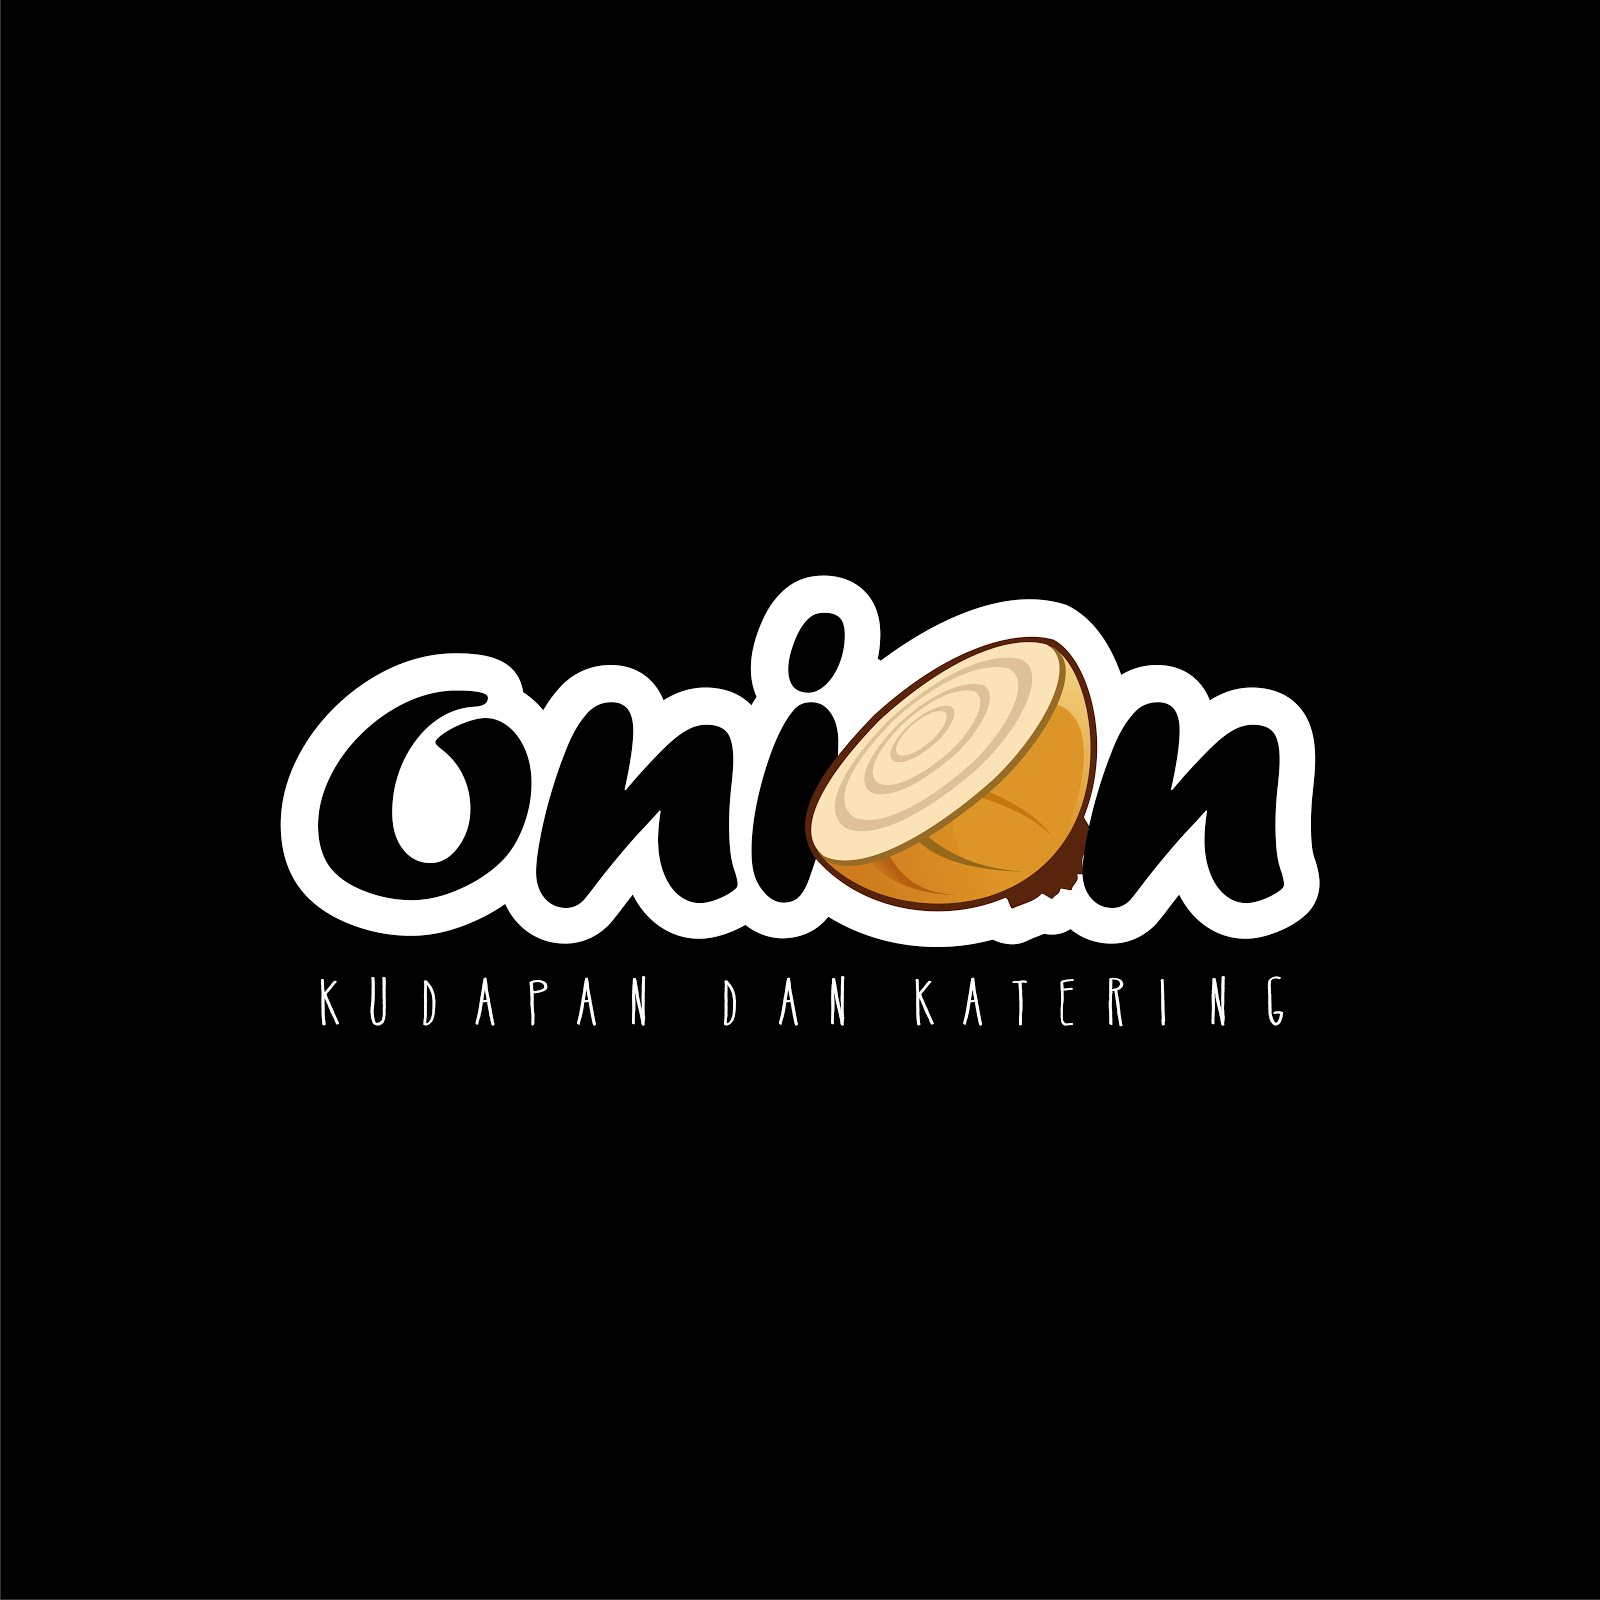 Order Onion's Snacks and Personal Catering HERE!